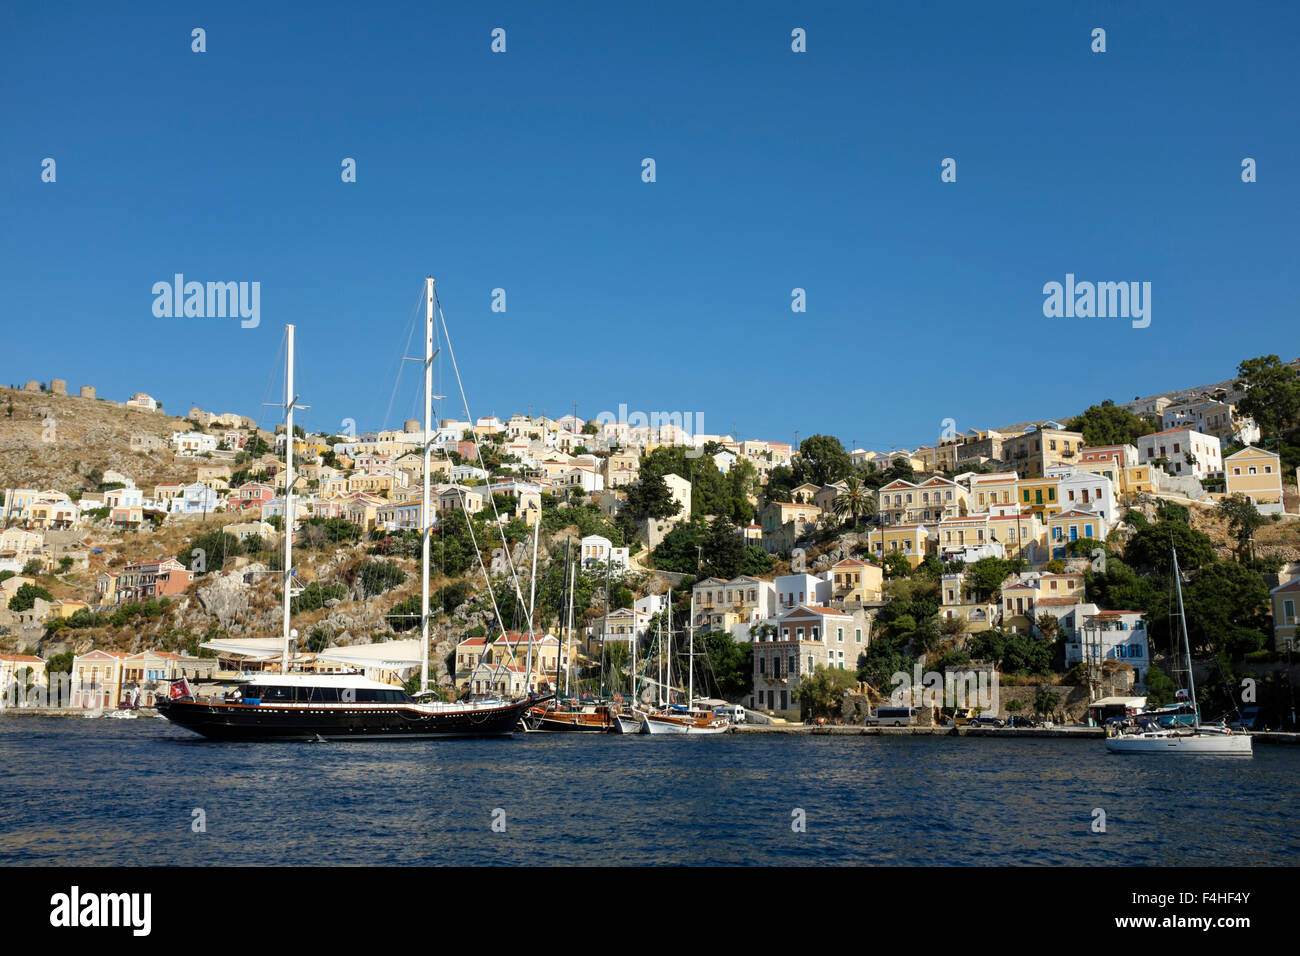 A twin masted sailing ship in Yialos harbour, on the Greek island of Symi. Stock Photo